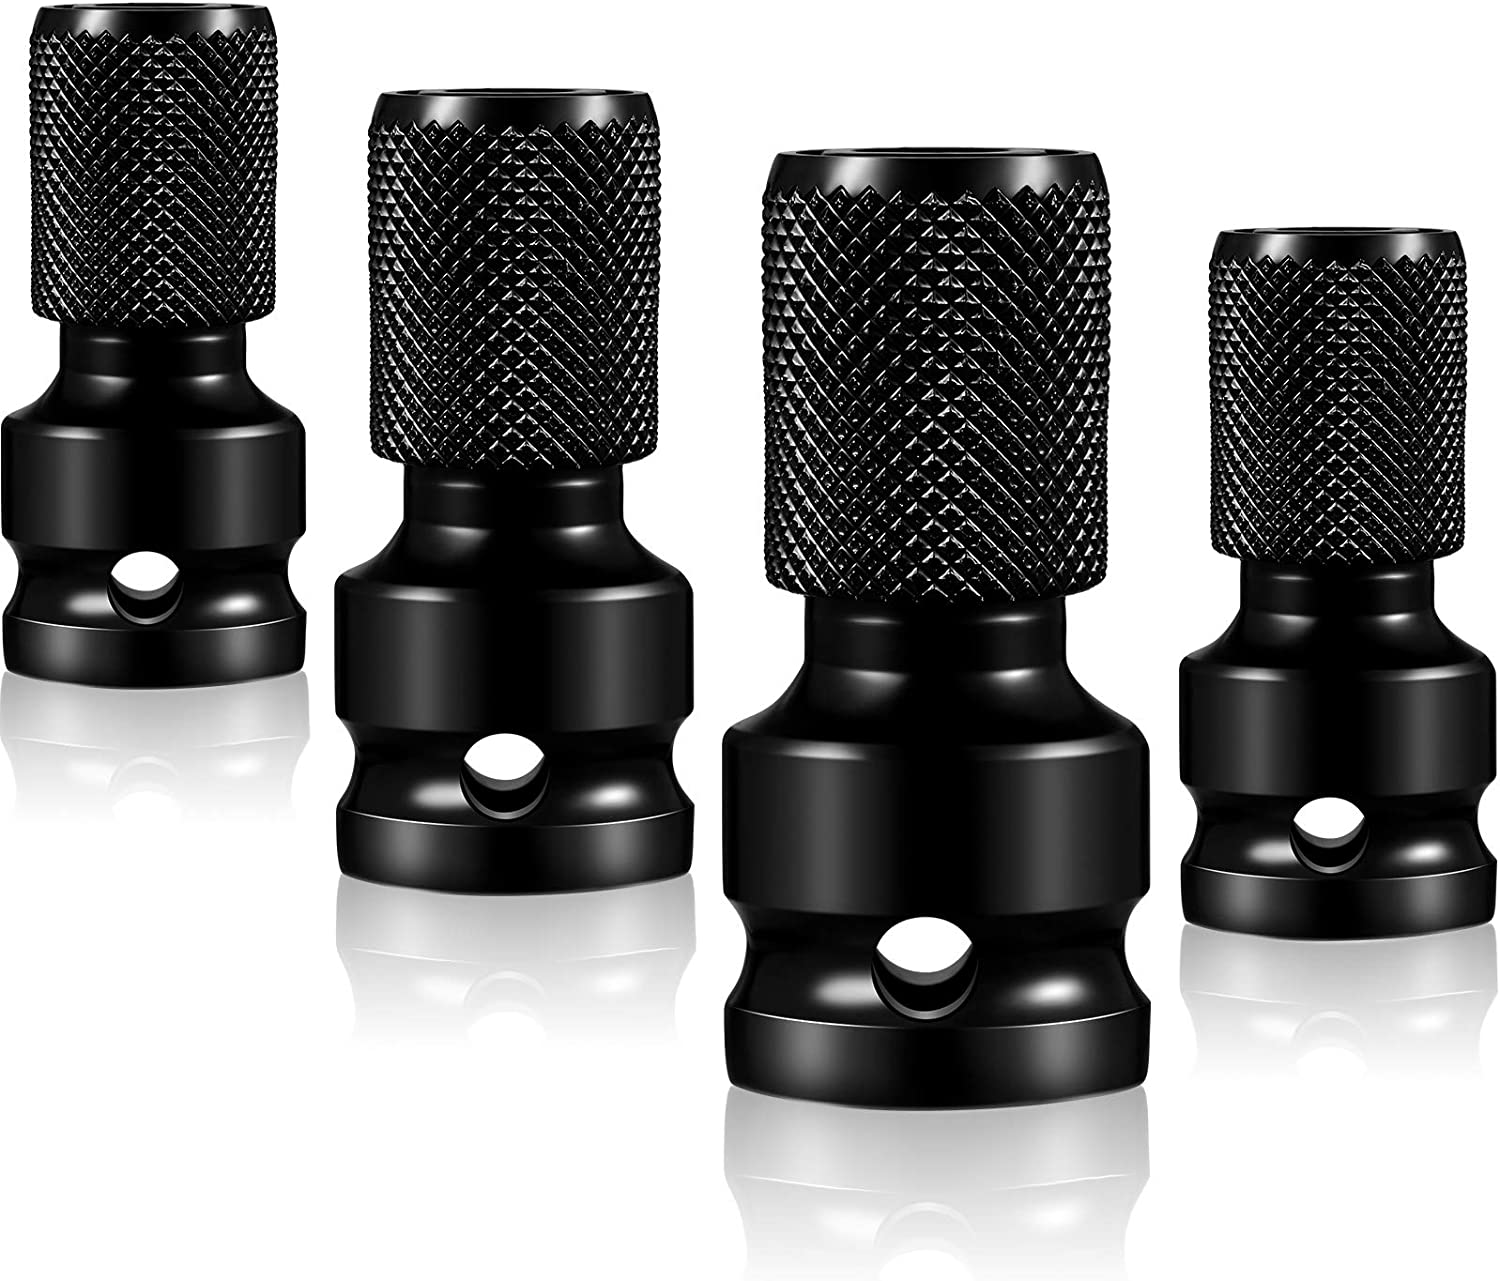 Spring new work one Manufacturer direct delivery after another 4 Pieces 1 2 Inches Square to Impac Female Hex Socket